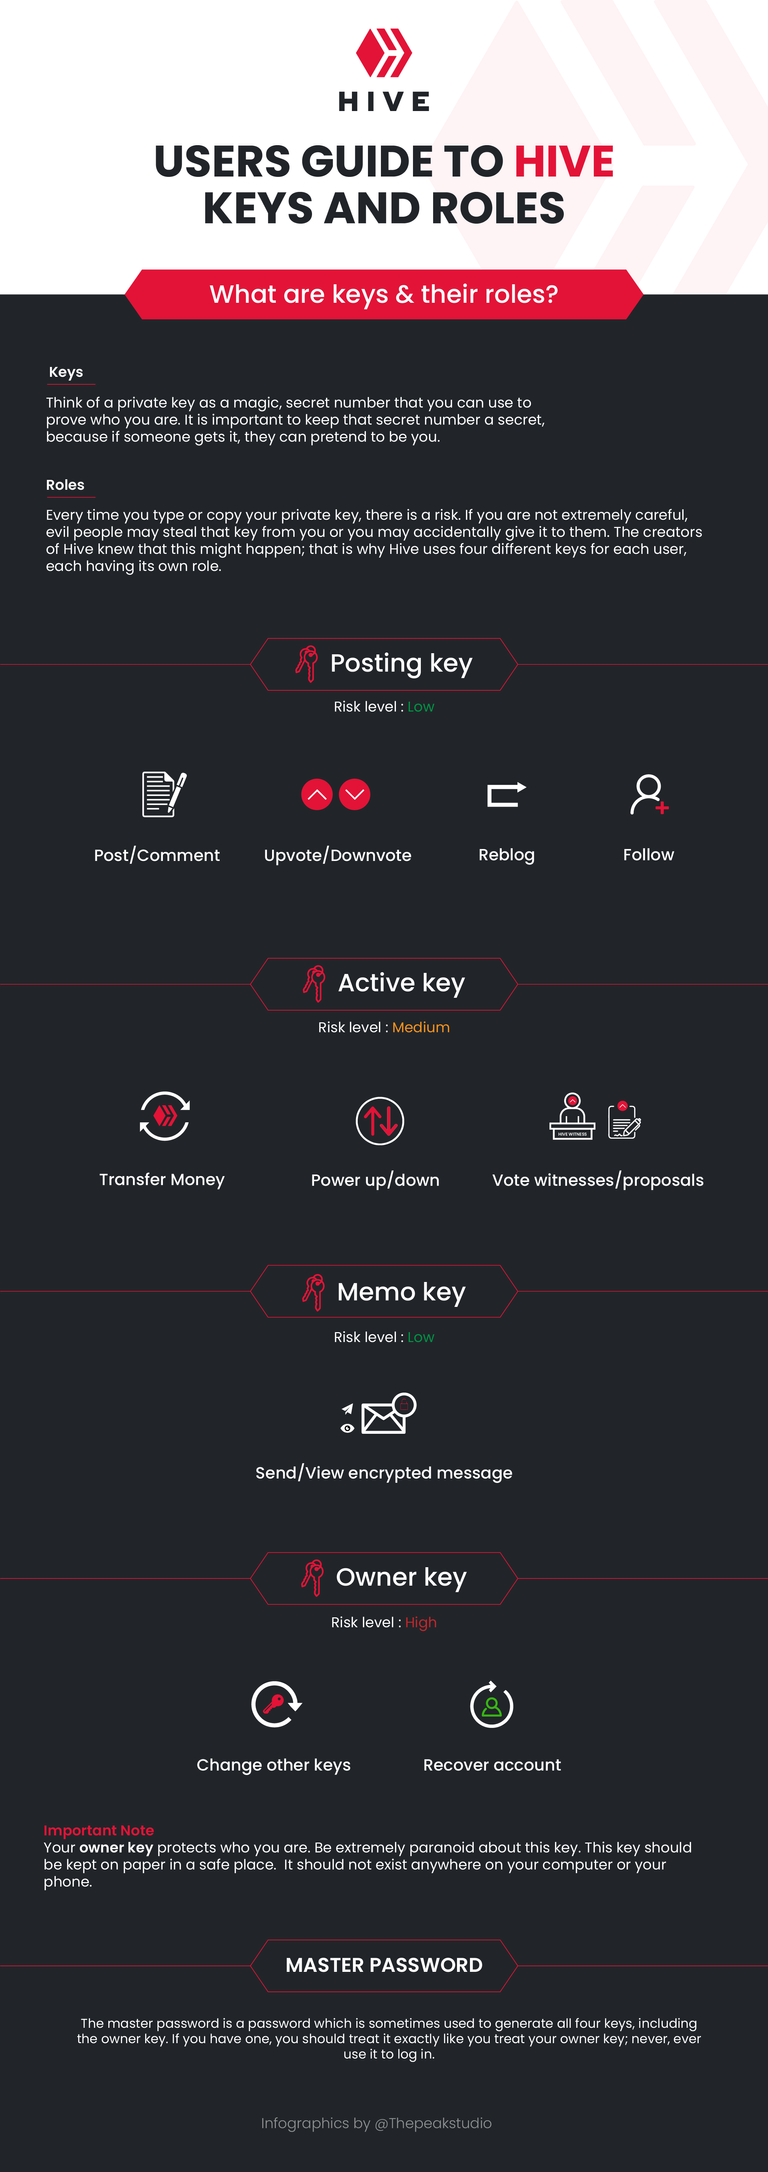 user guide to hive keys and roles-03.png